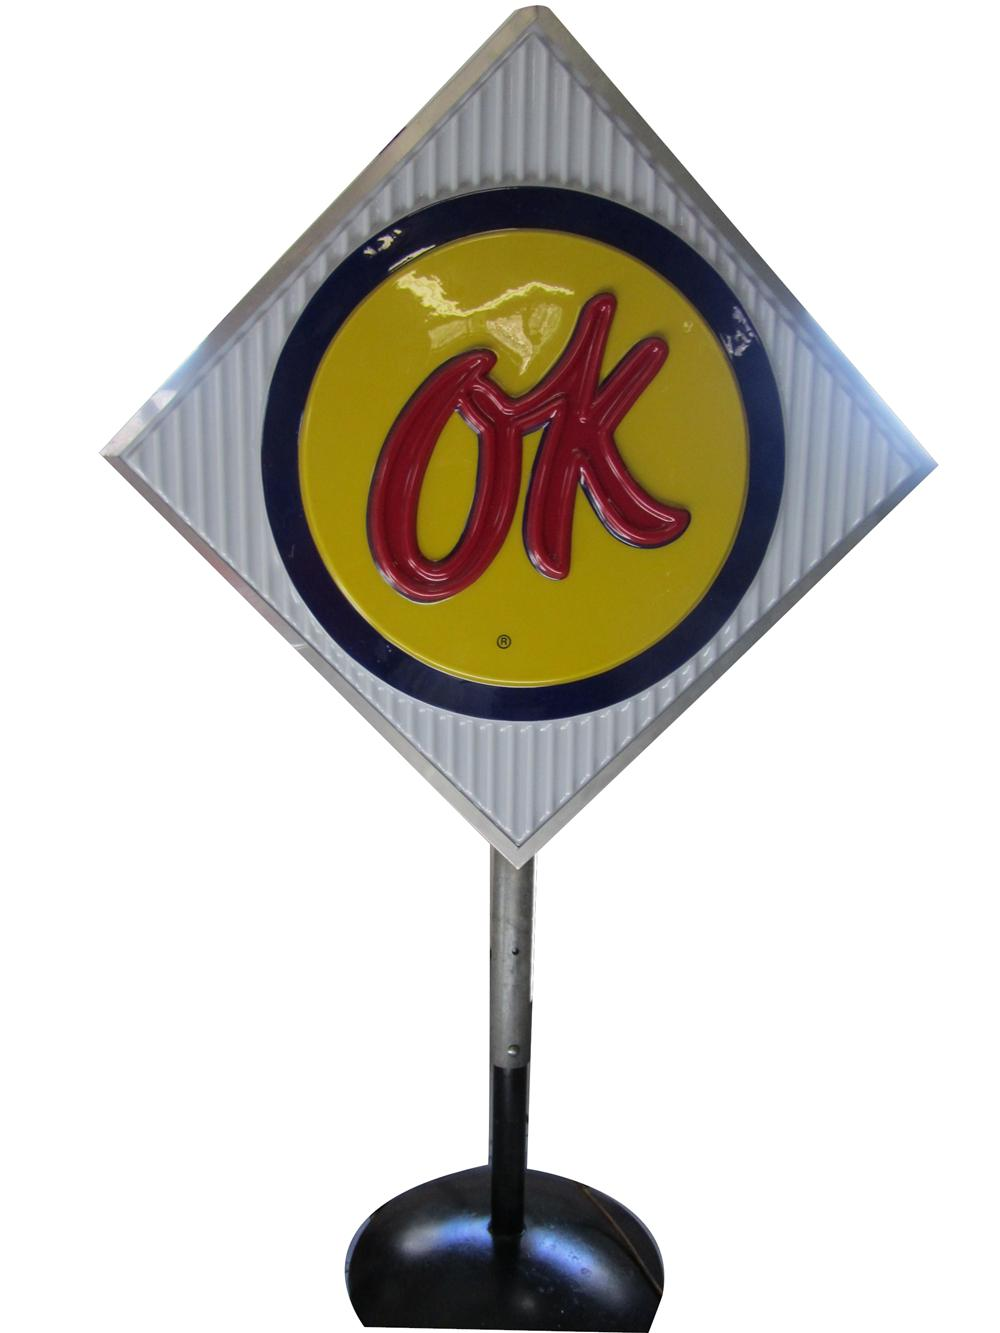 Highly sought after 1960s Chevrolet OK Used Cars single-sided light-up dealership sign on stand. - Front 3/4 - 158298